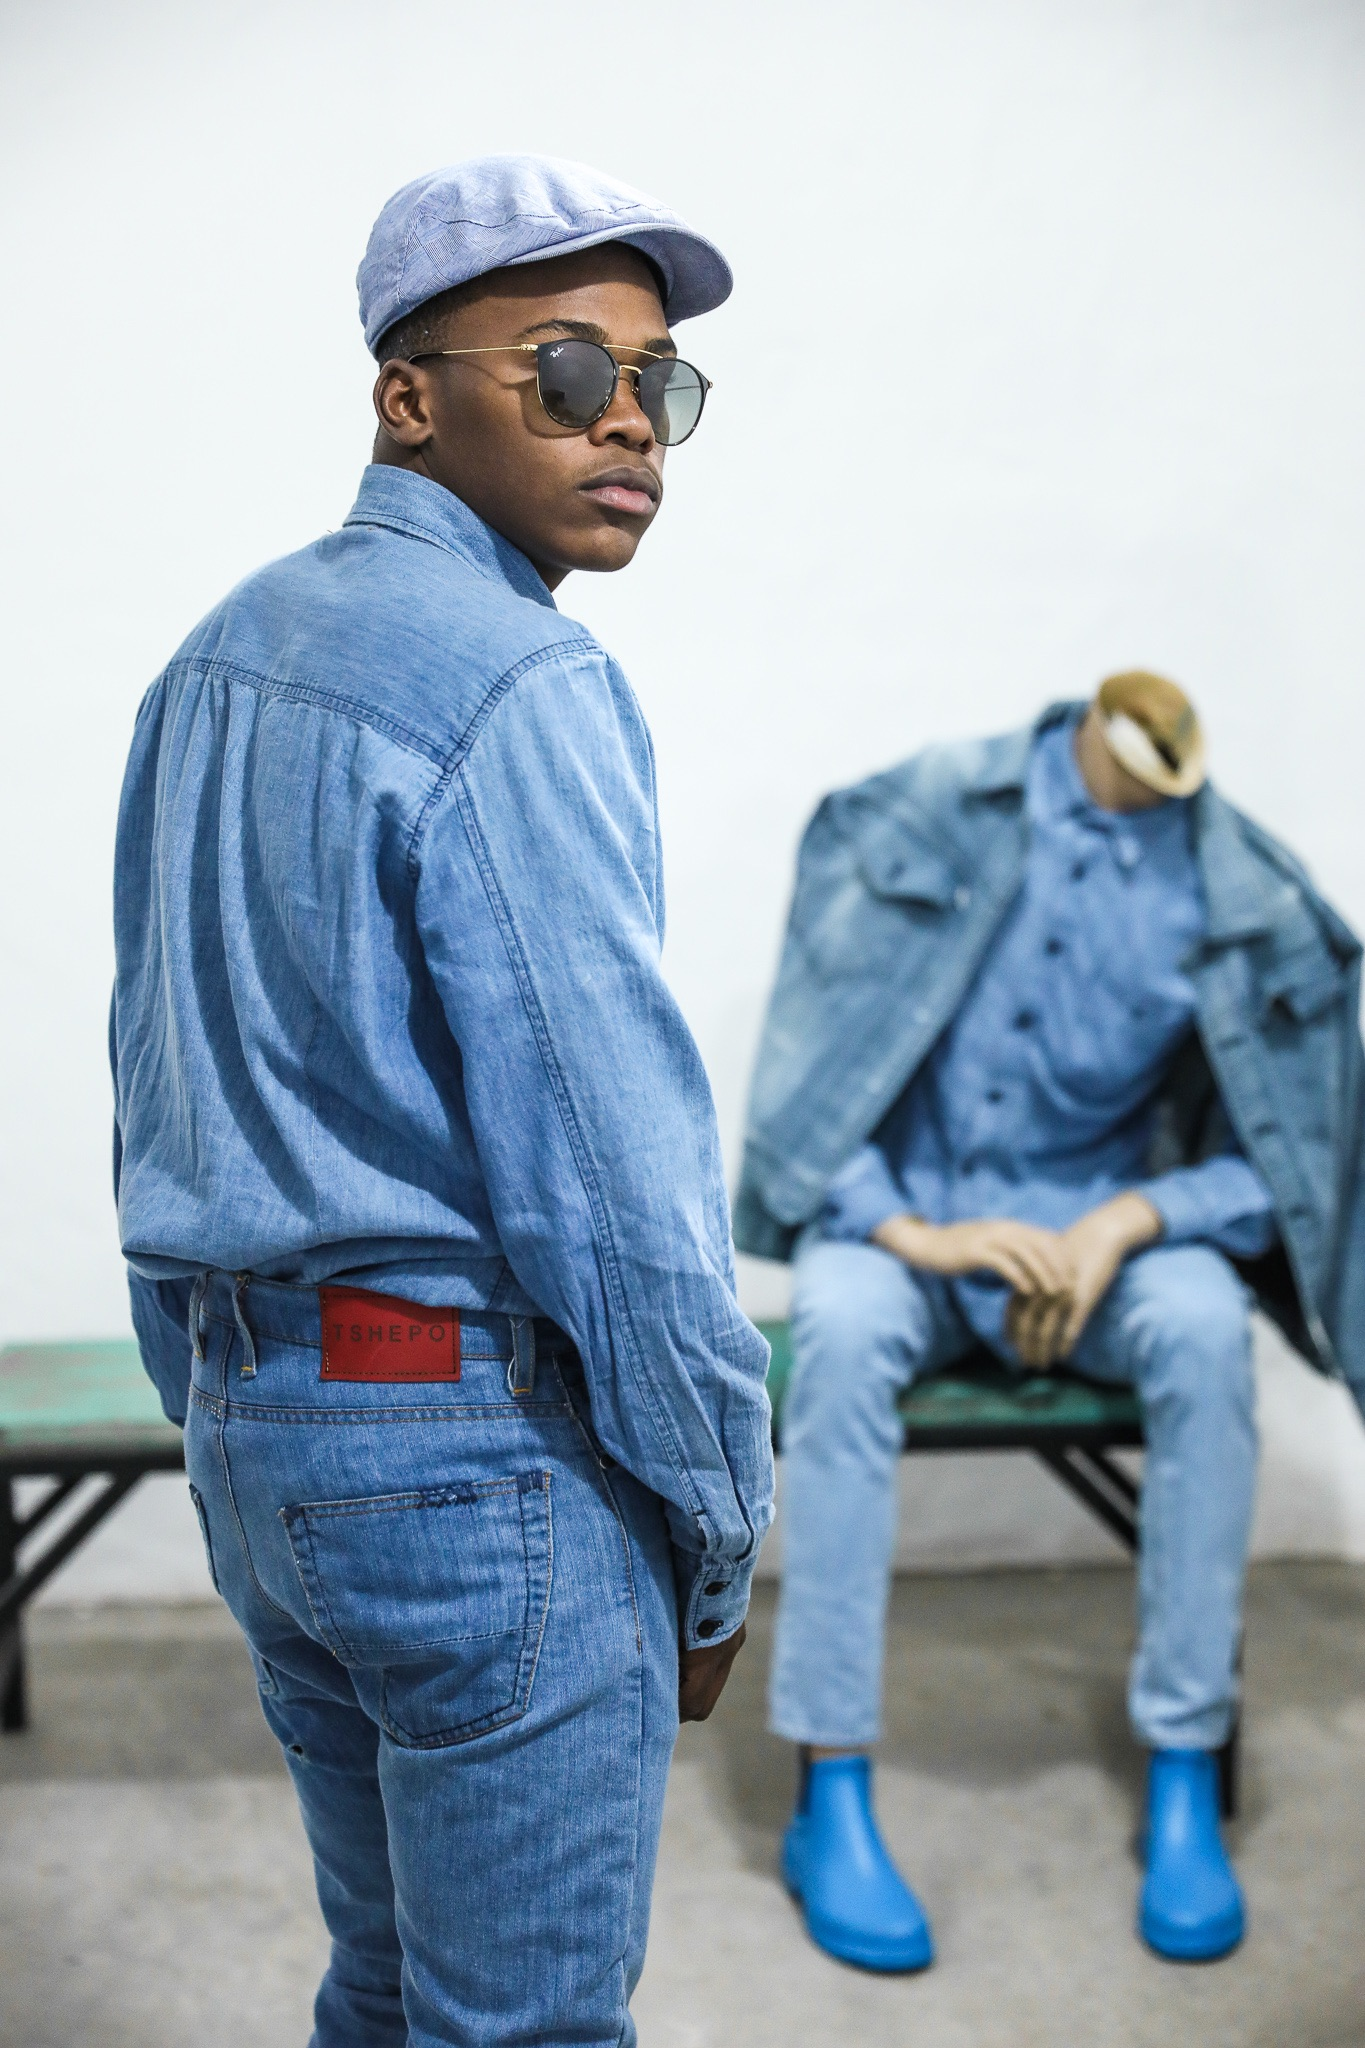 5 Minutes With Tshepo The JeanMaker